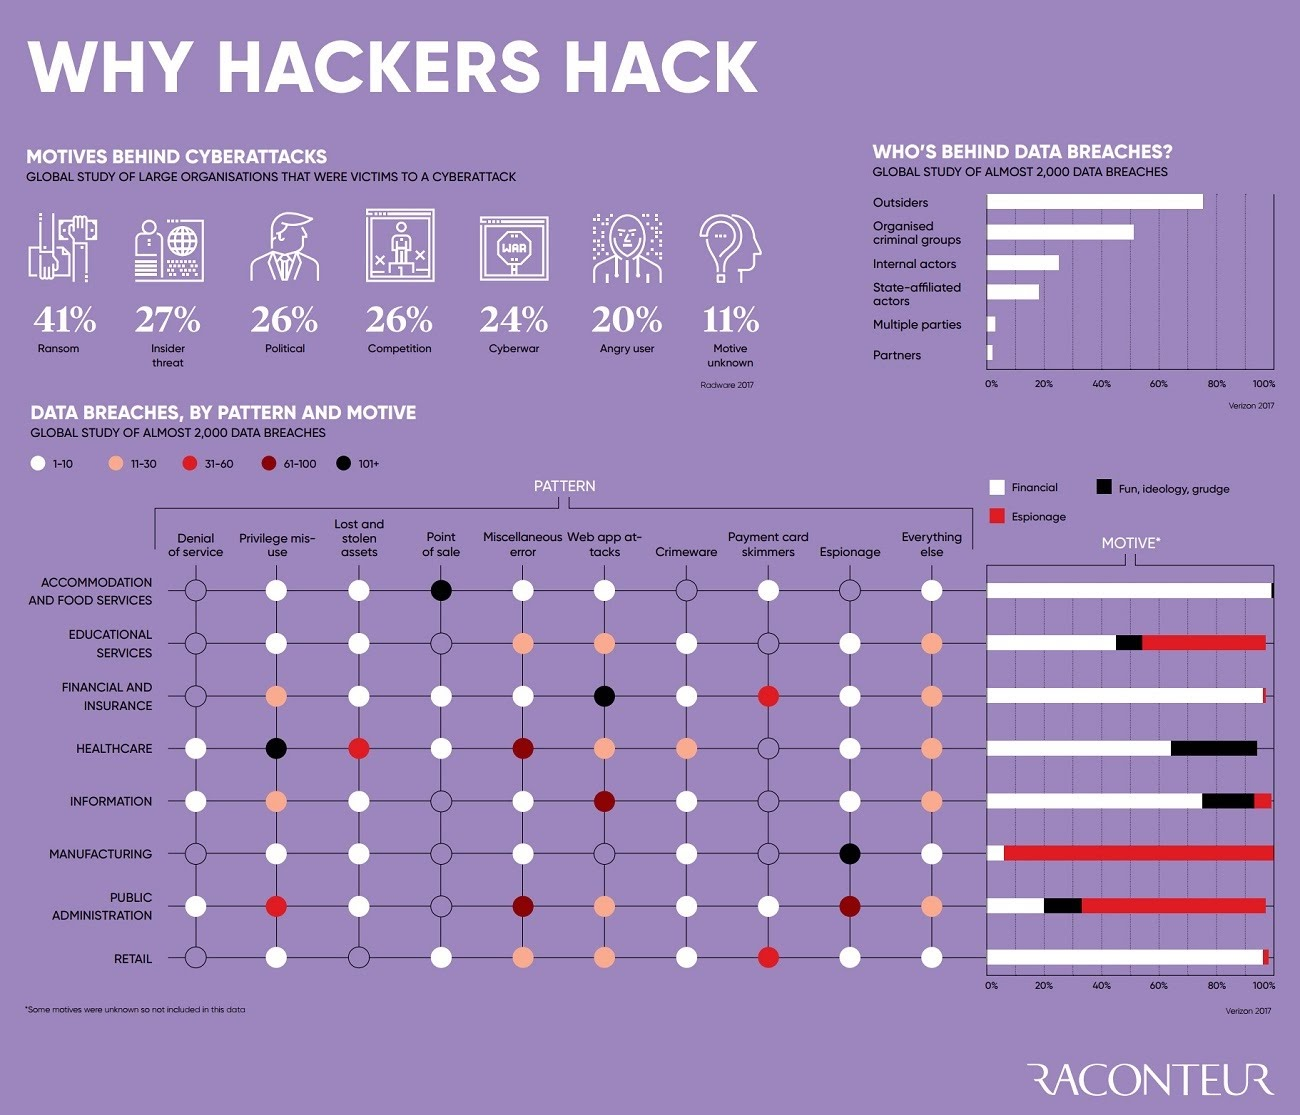 Why Hackers Hack: Motives Behind Cyberattacks